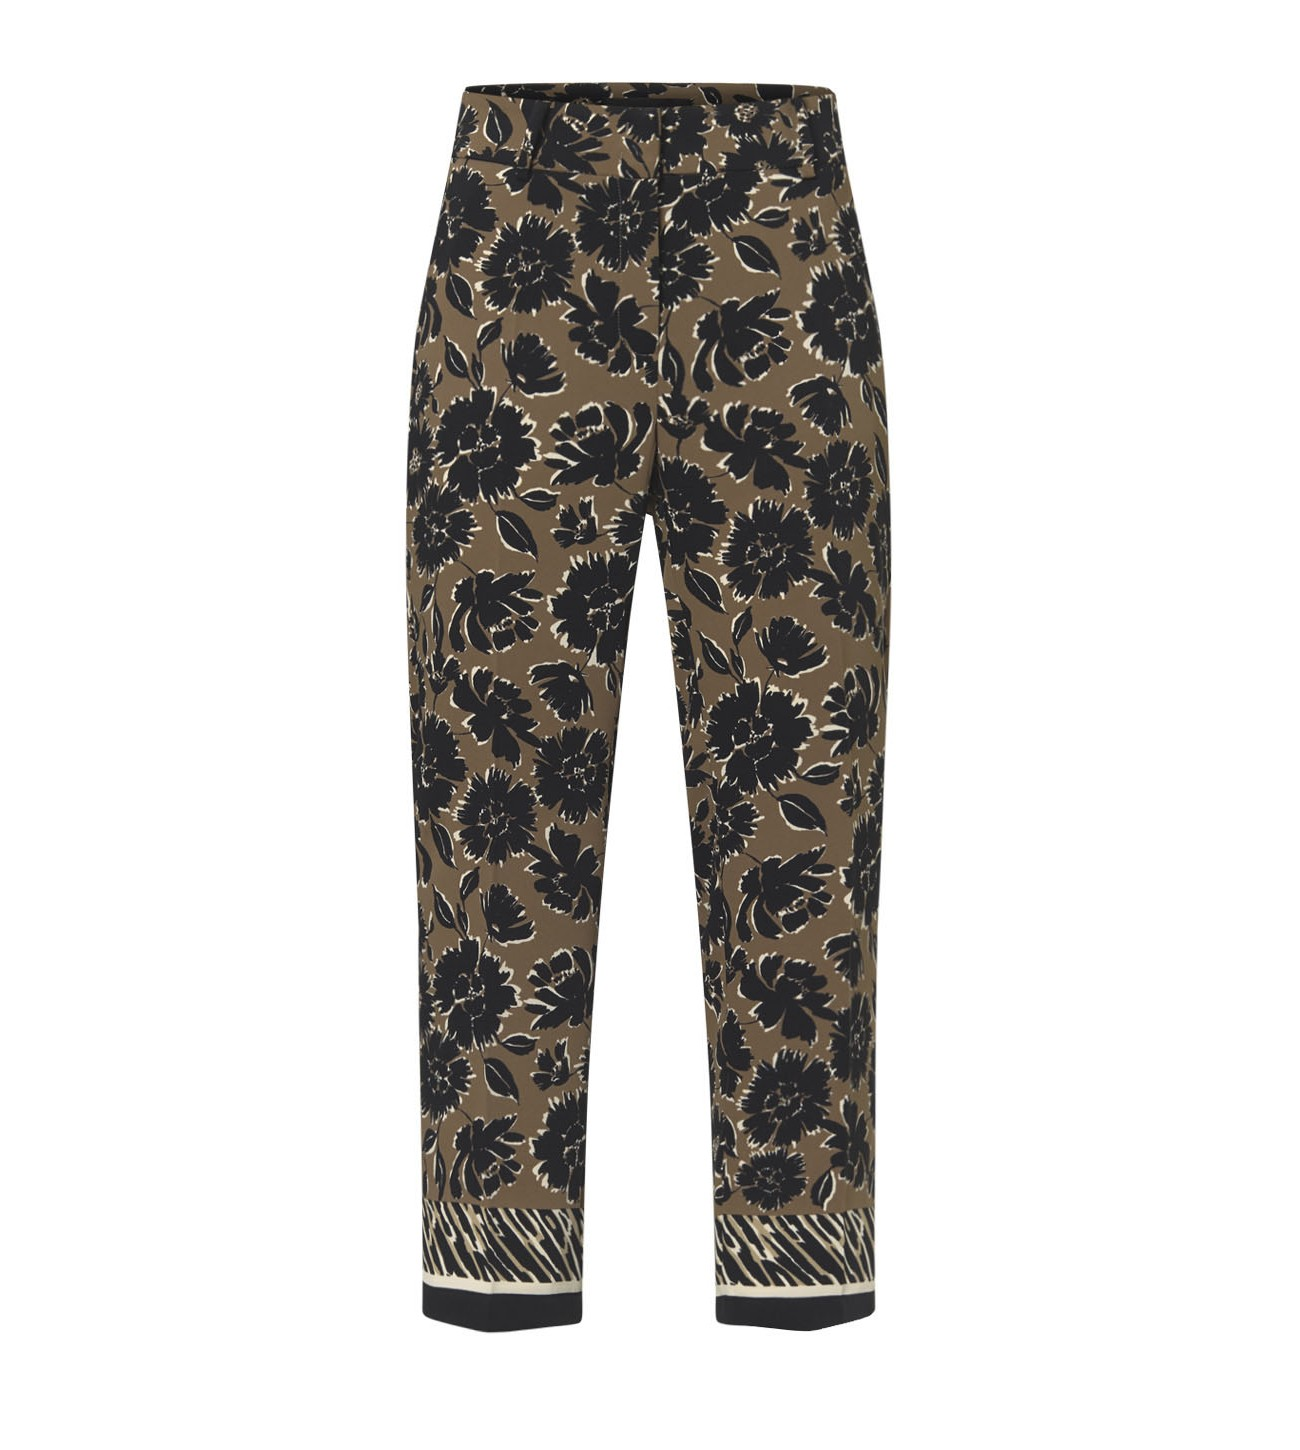 CAMBIO_FLOWER_PRINT_TROUSERS_MARIONA_FASHION_CLOTHING_WOMAN_SHOP_ONLINE_0215/00